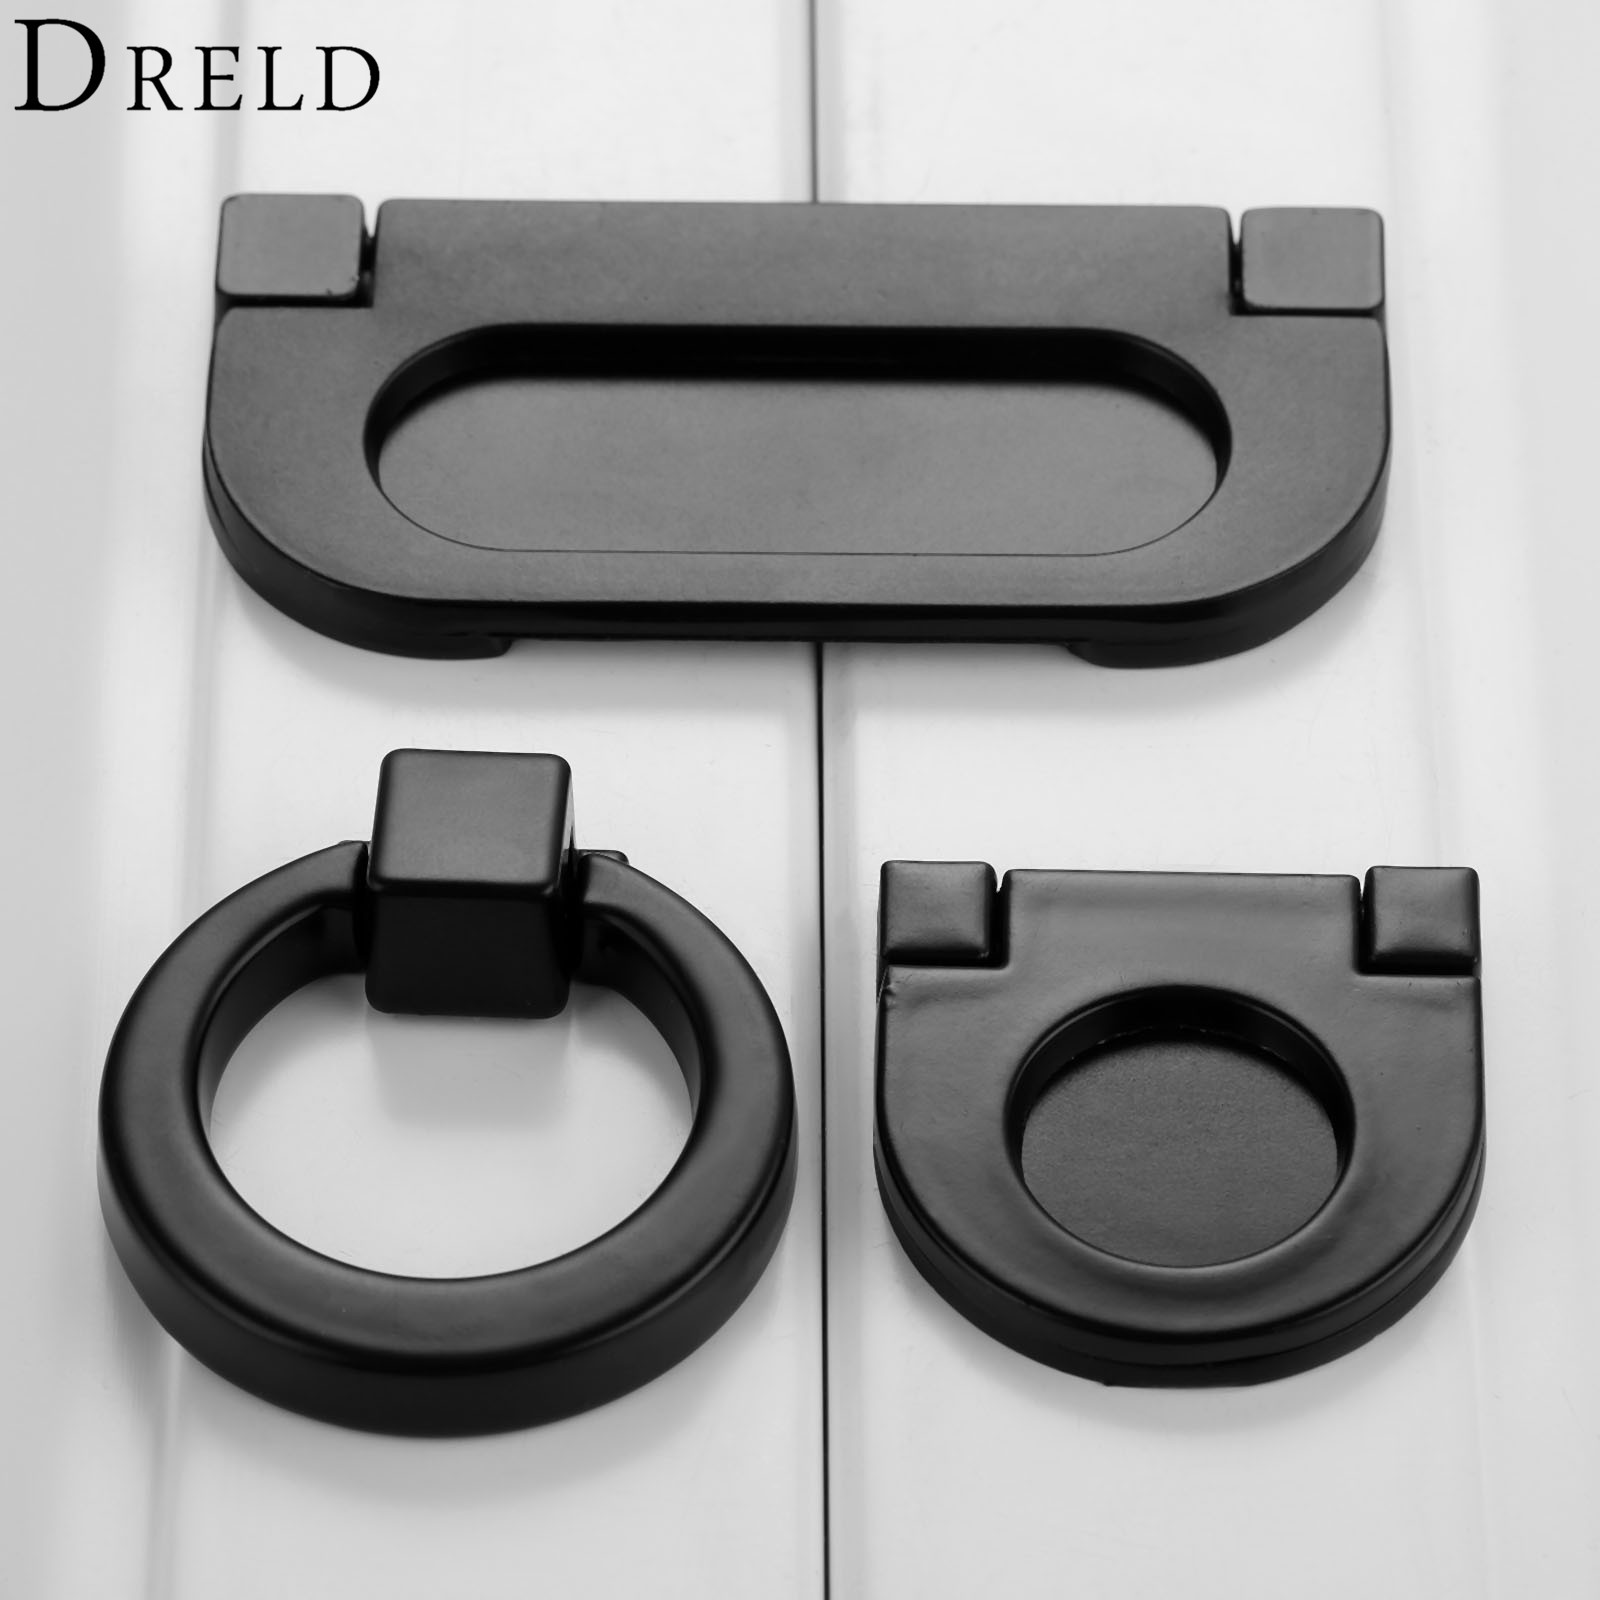 DRELD Black Hidden Furniture Handles Zinc Alloy Cabinet Invisible Handle Drawer Wardrobe Door Knobs For Furniture Hardware new 2pcs lot 304 stainless steel handles hidden recessed invisible pull fire proof door handles cabinet knobs furniture hardware